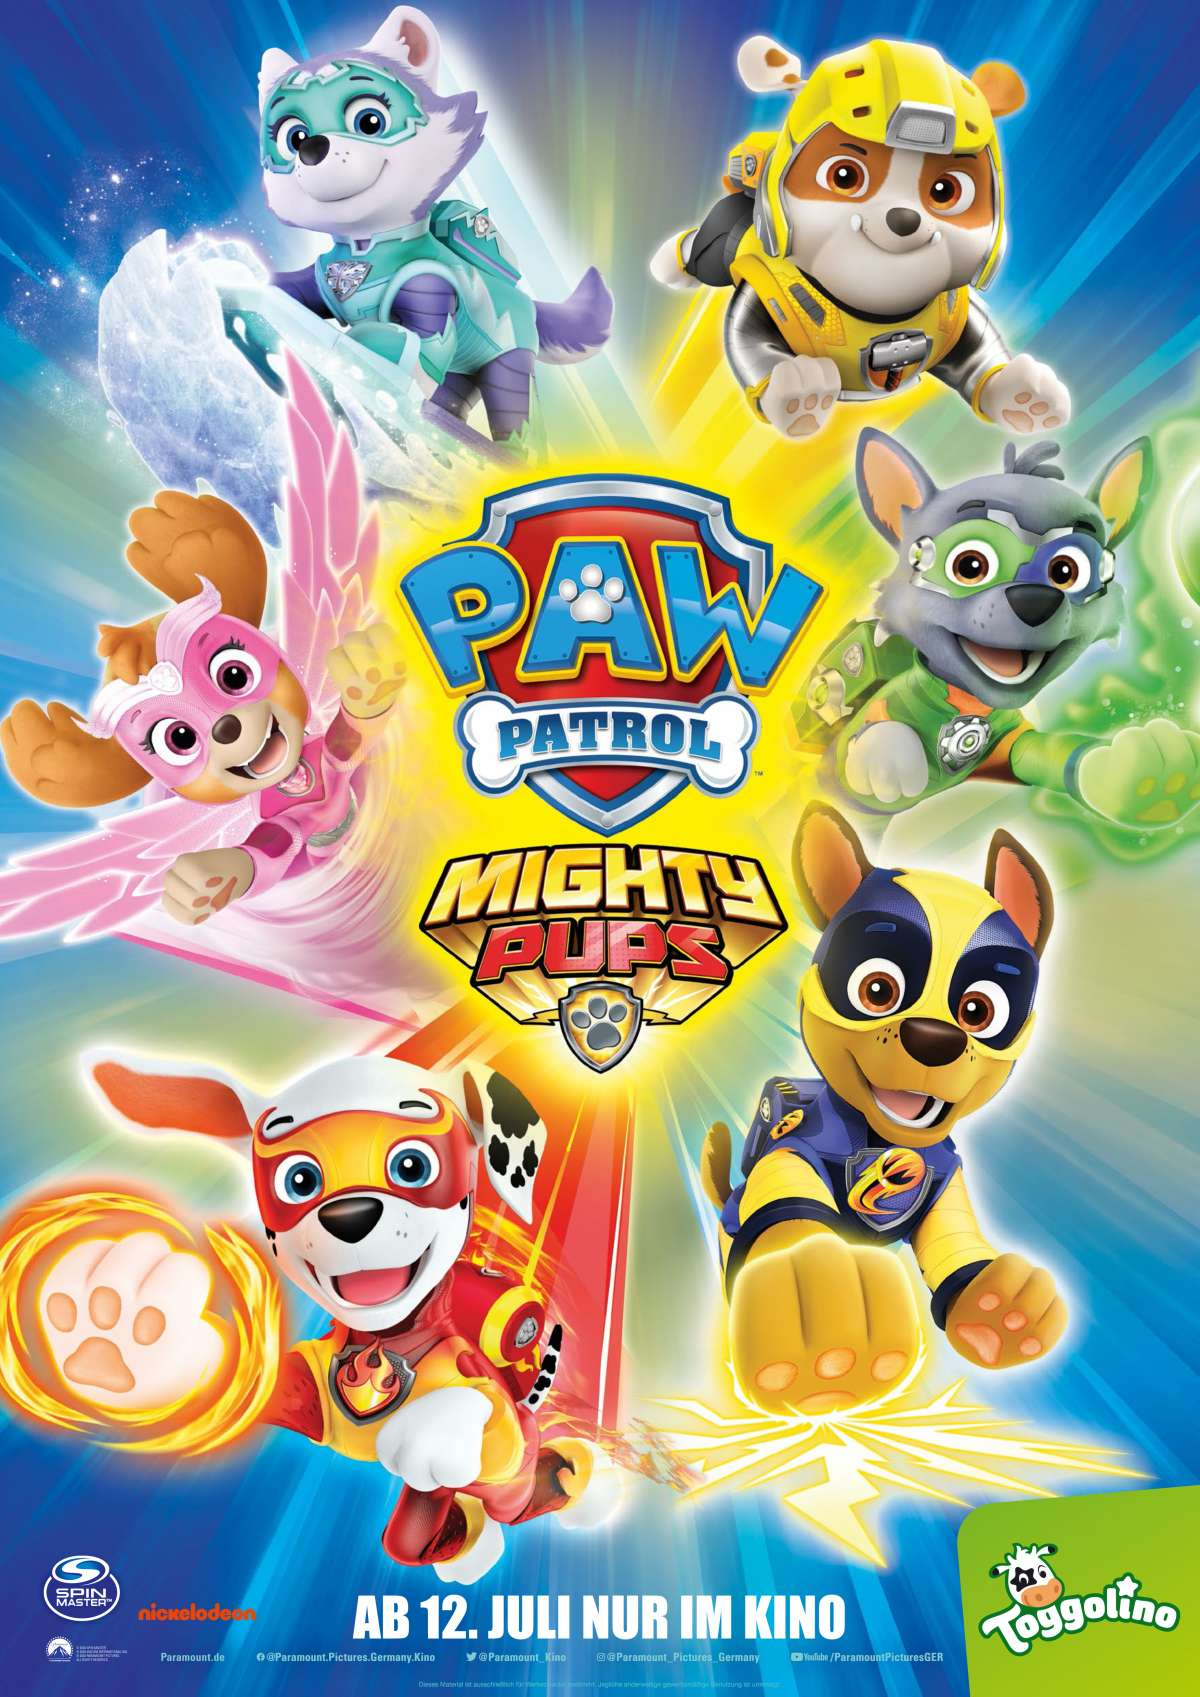 Paw Patrol: Mighty Pups - CineK-Kino  - Korbach